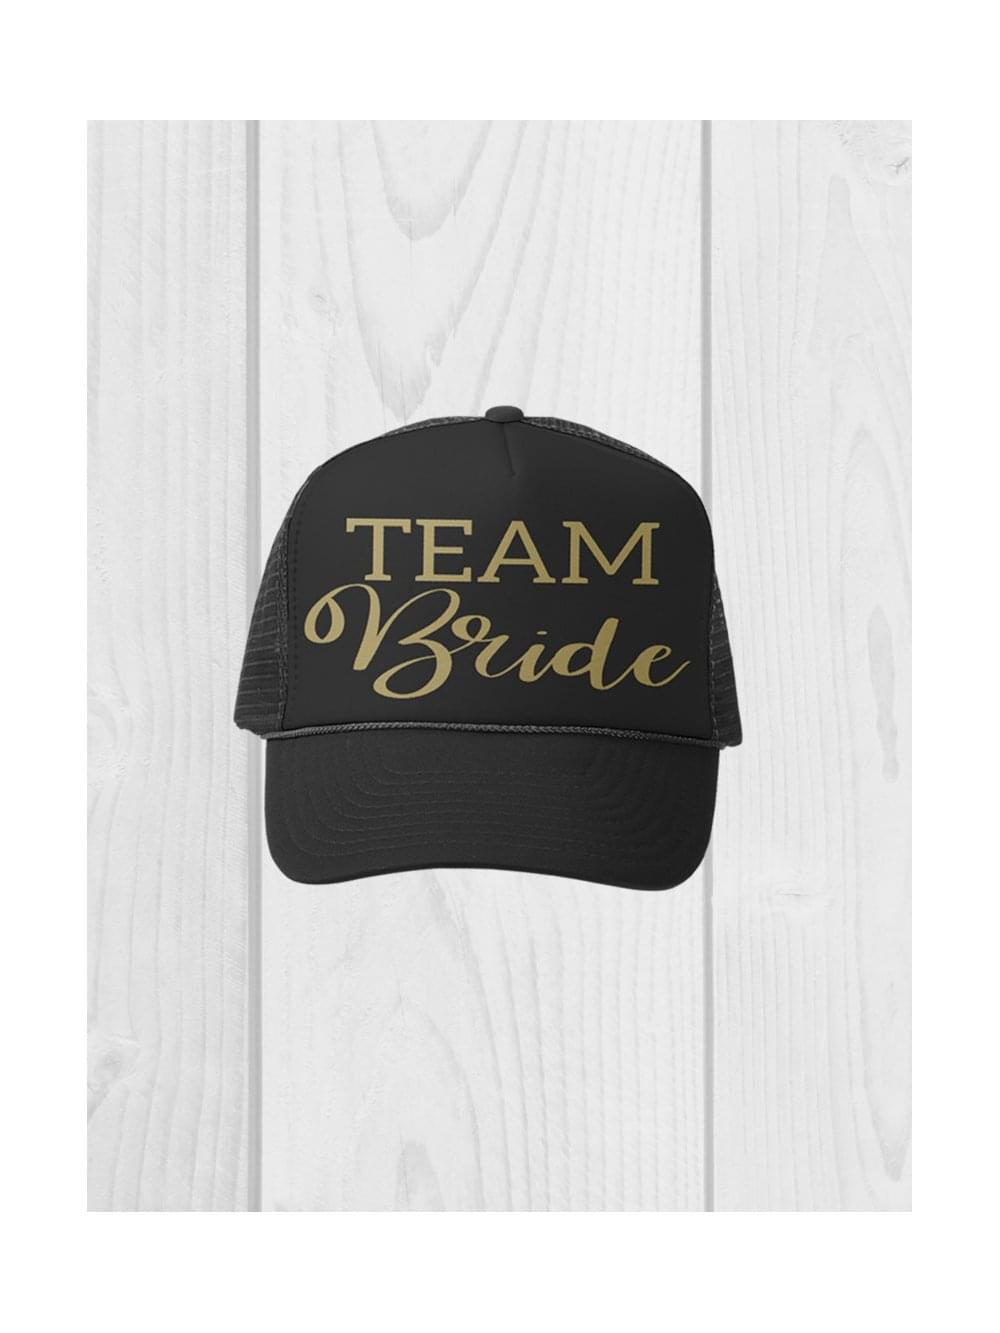 65693a8b966 Hen Party Superstore Black  Team Bride  Peaked Cap - Hats from Hen ...